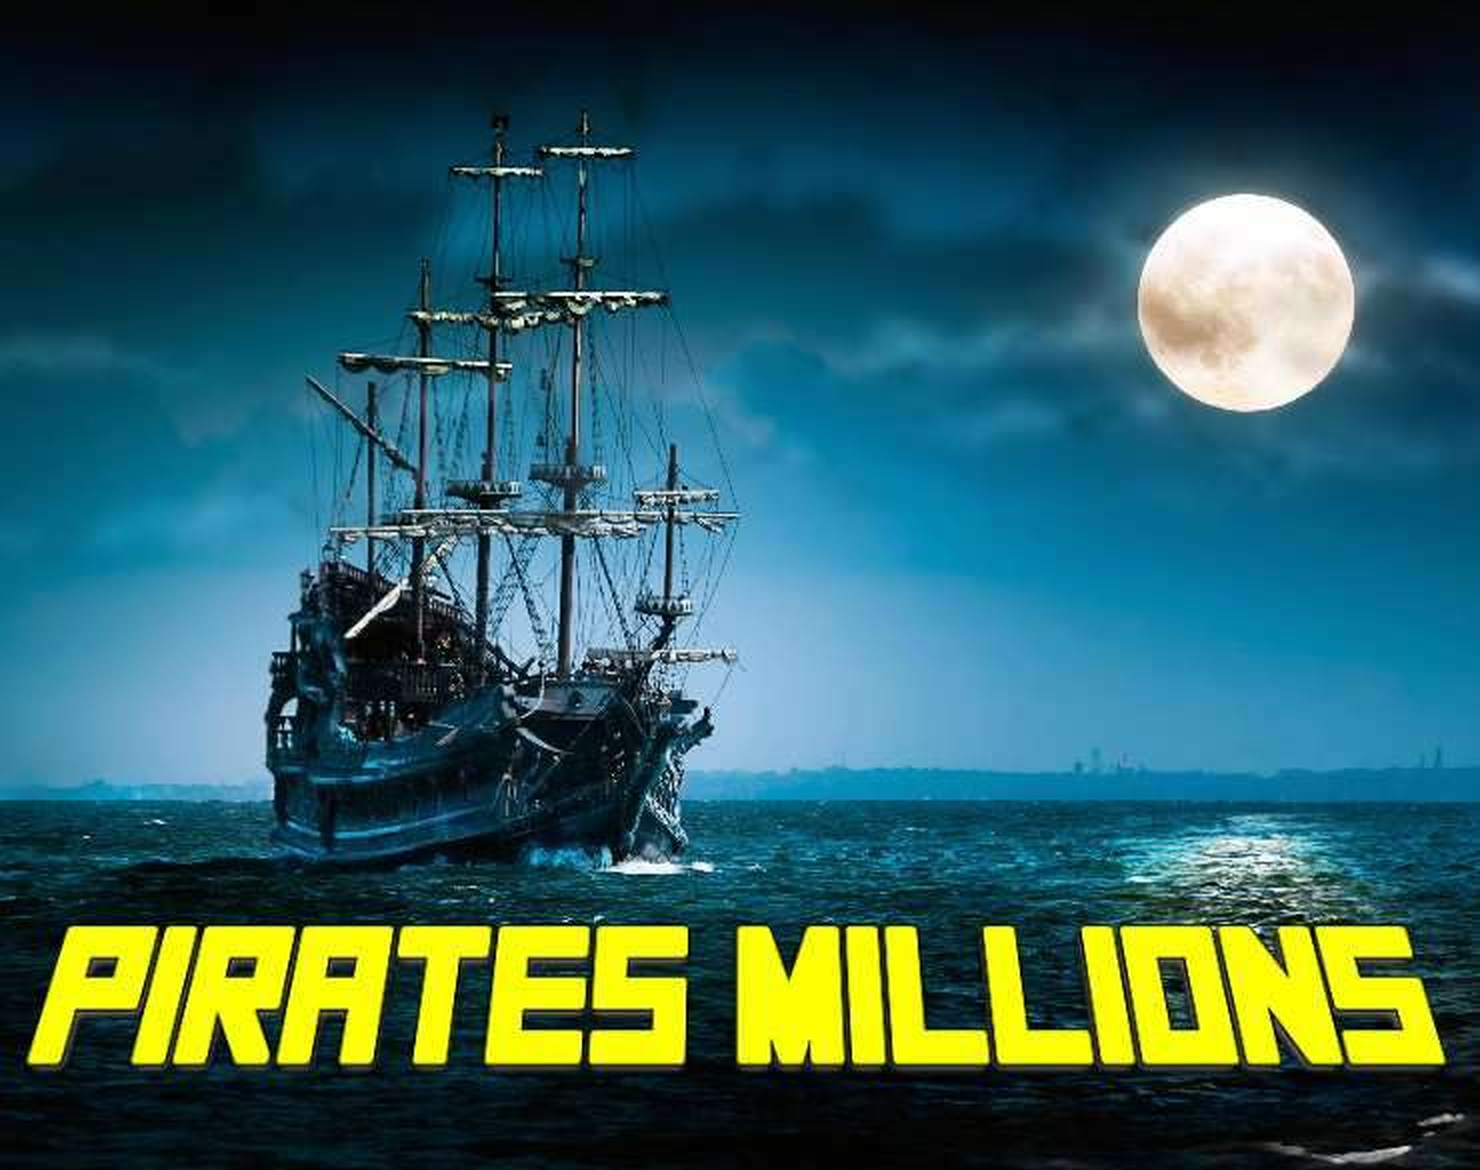 The Pirates Millions Online Slot Demo Game by 888 Gaming